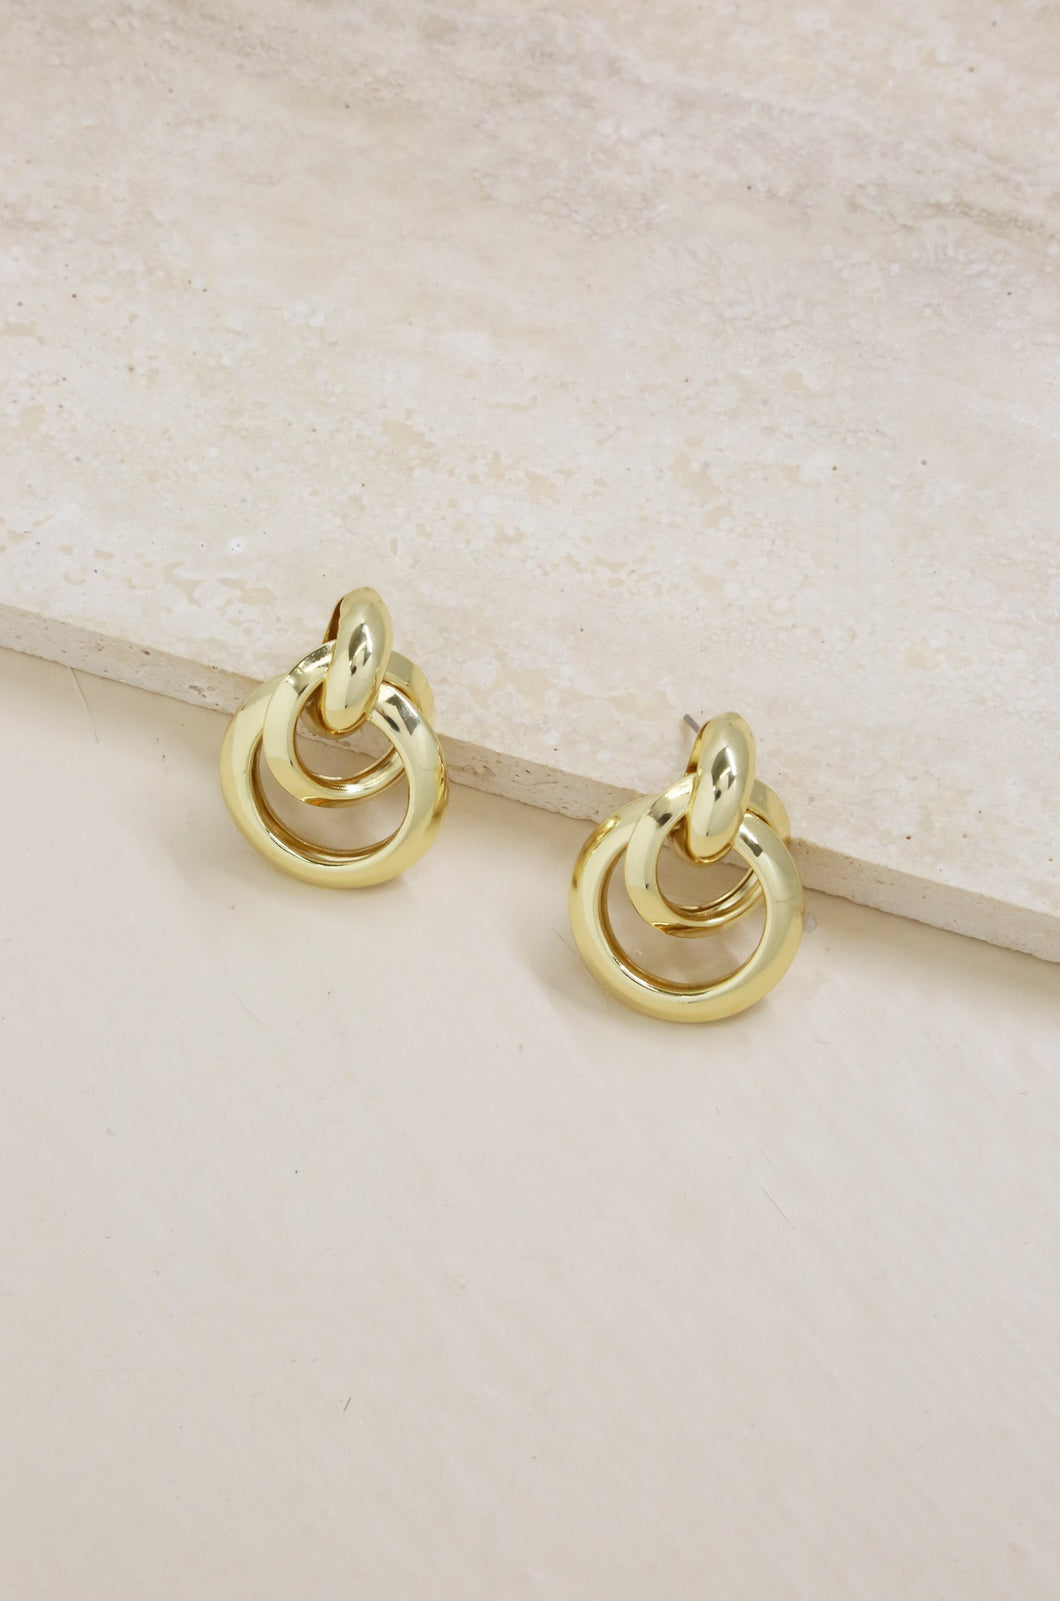 Classic Vibes Multi Ring 18k Gold Plated Statement Stud Earrings - SteelJoy!